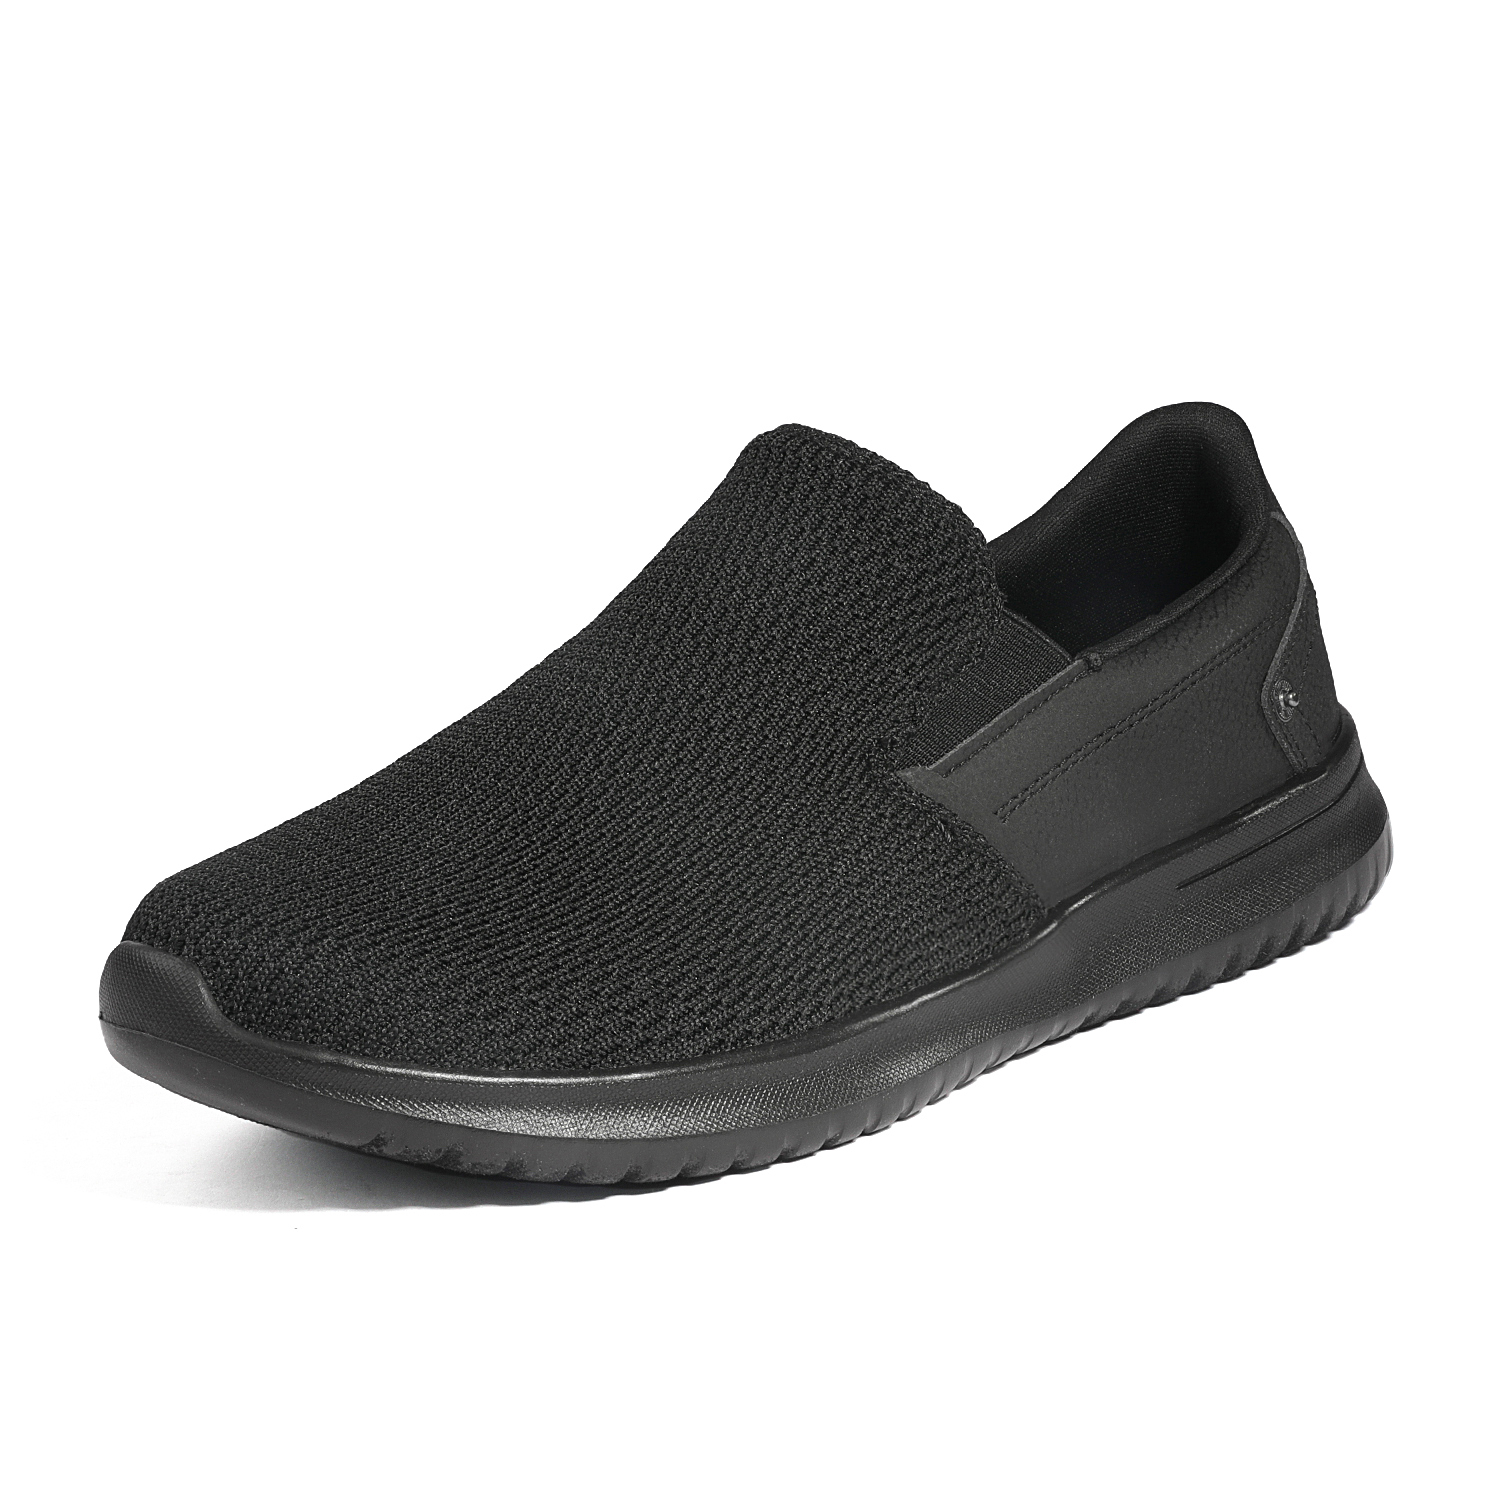 Bruno-Marc-Men-039-s-Slip-On-Walking-Shoes-Men-039-s-Sneakers-Men-Shoe-Running-Casual thumbnail 2